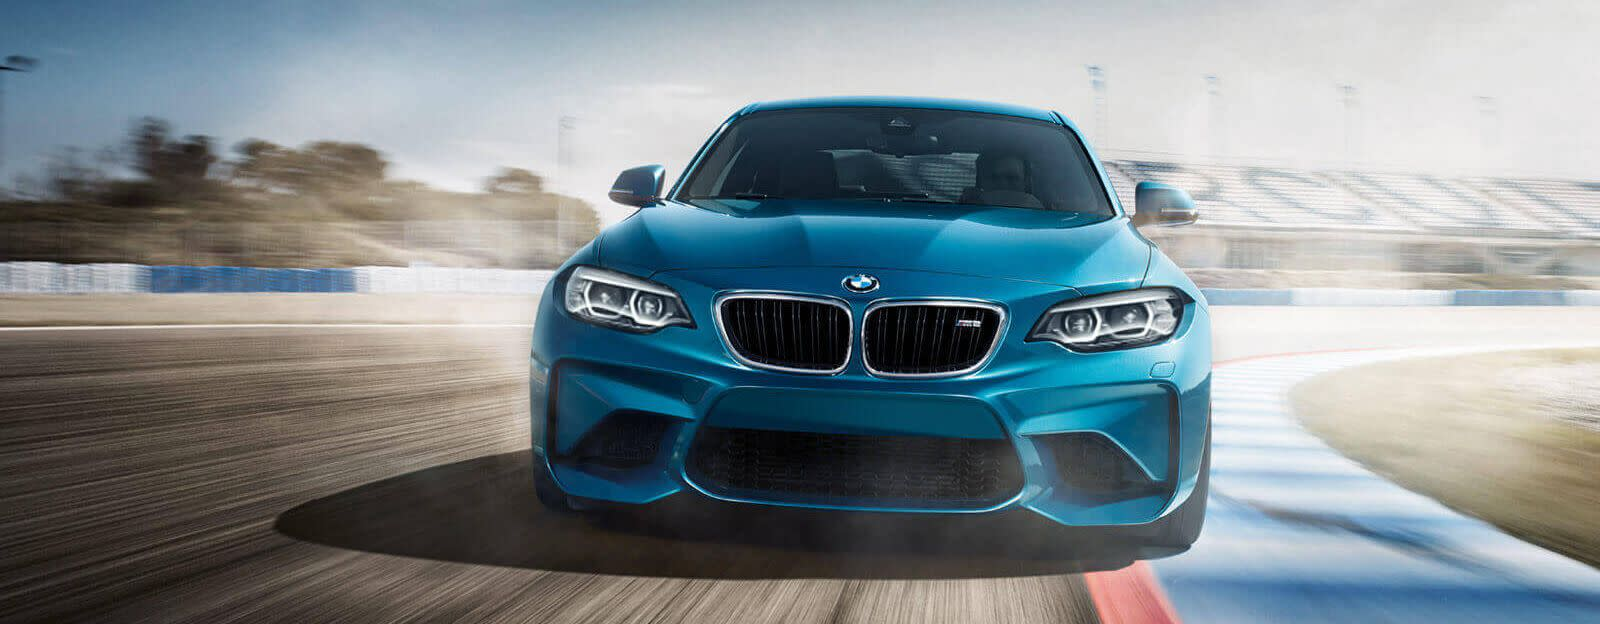 2017 BMW M2 Financing near Flossmoor, IL